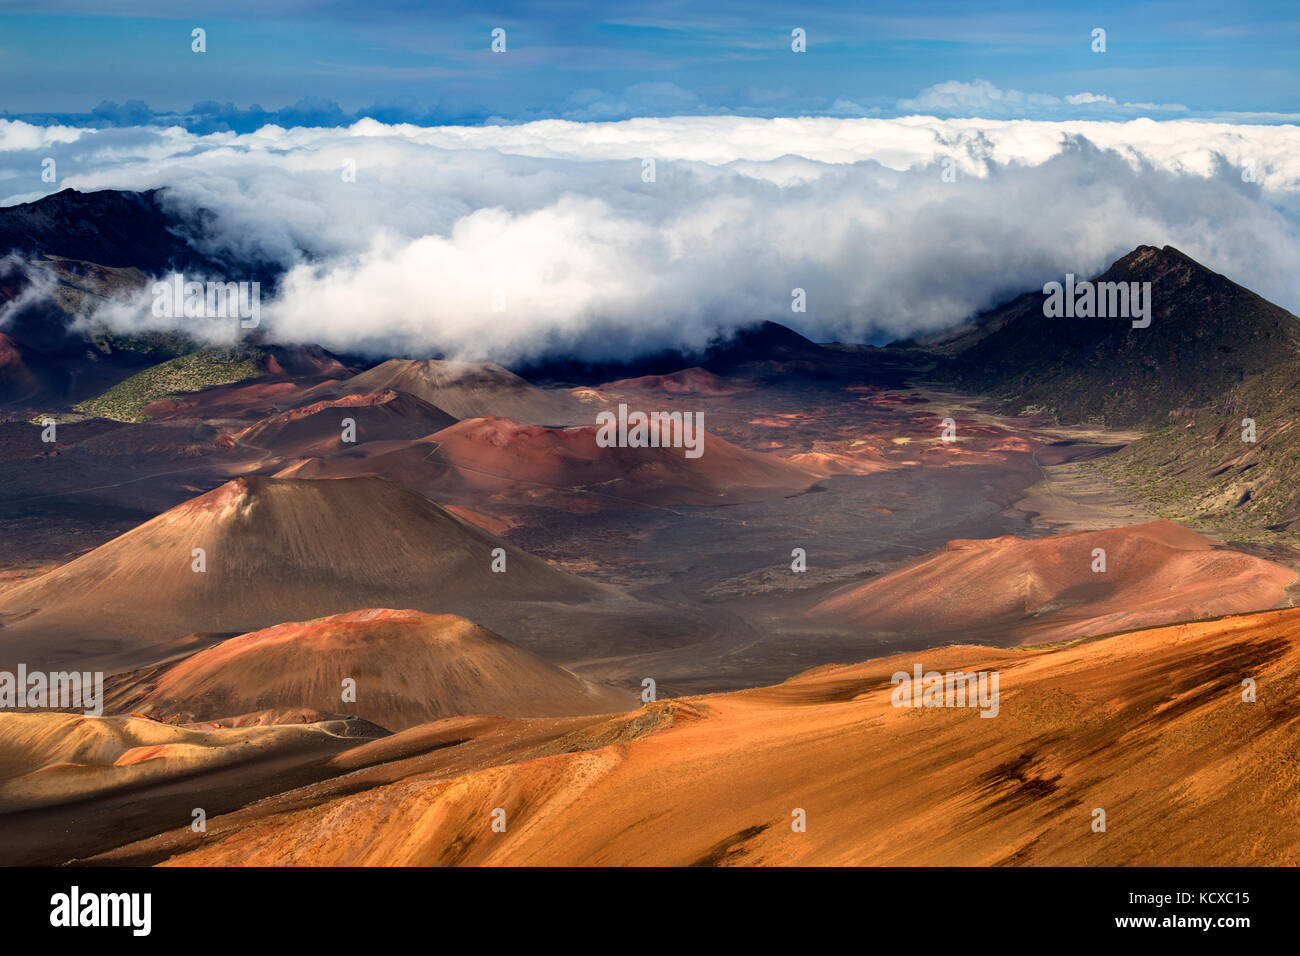 Rim of a colorful cinder cones and features stunning views across the crater floor Haleakala National park, Hawaii - Stock Image